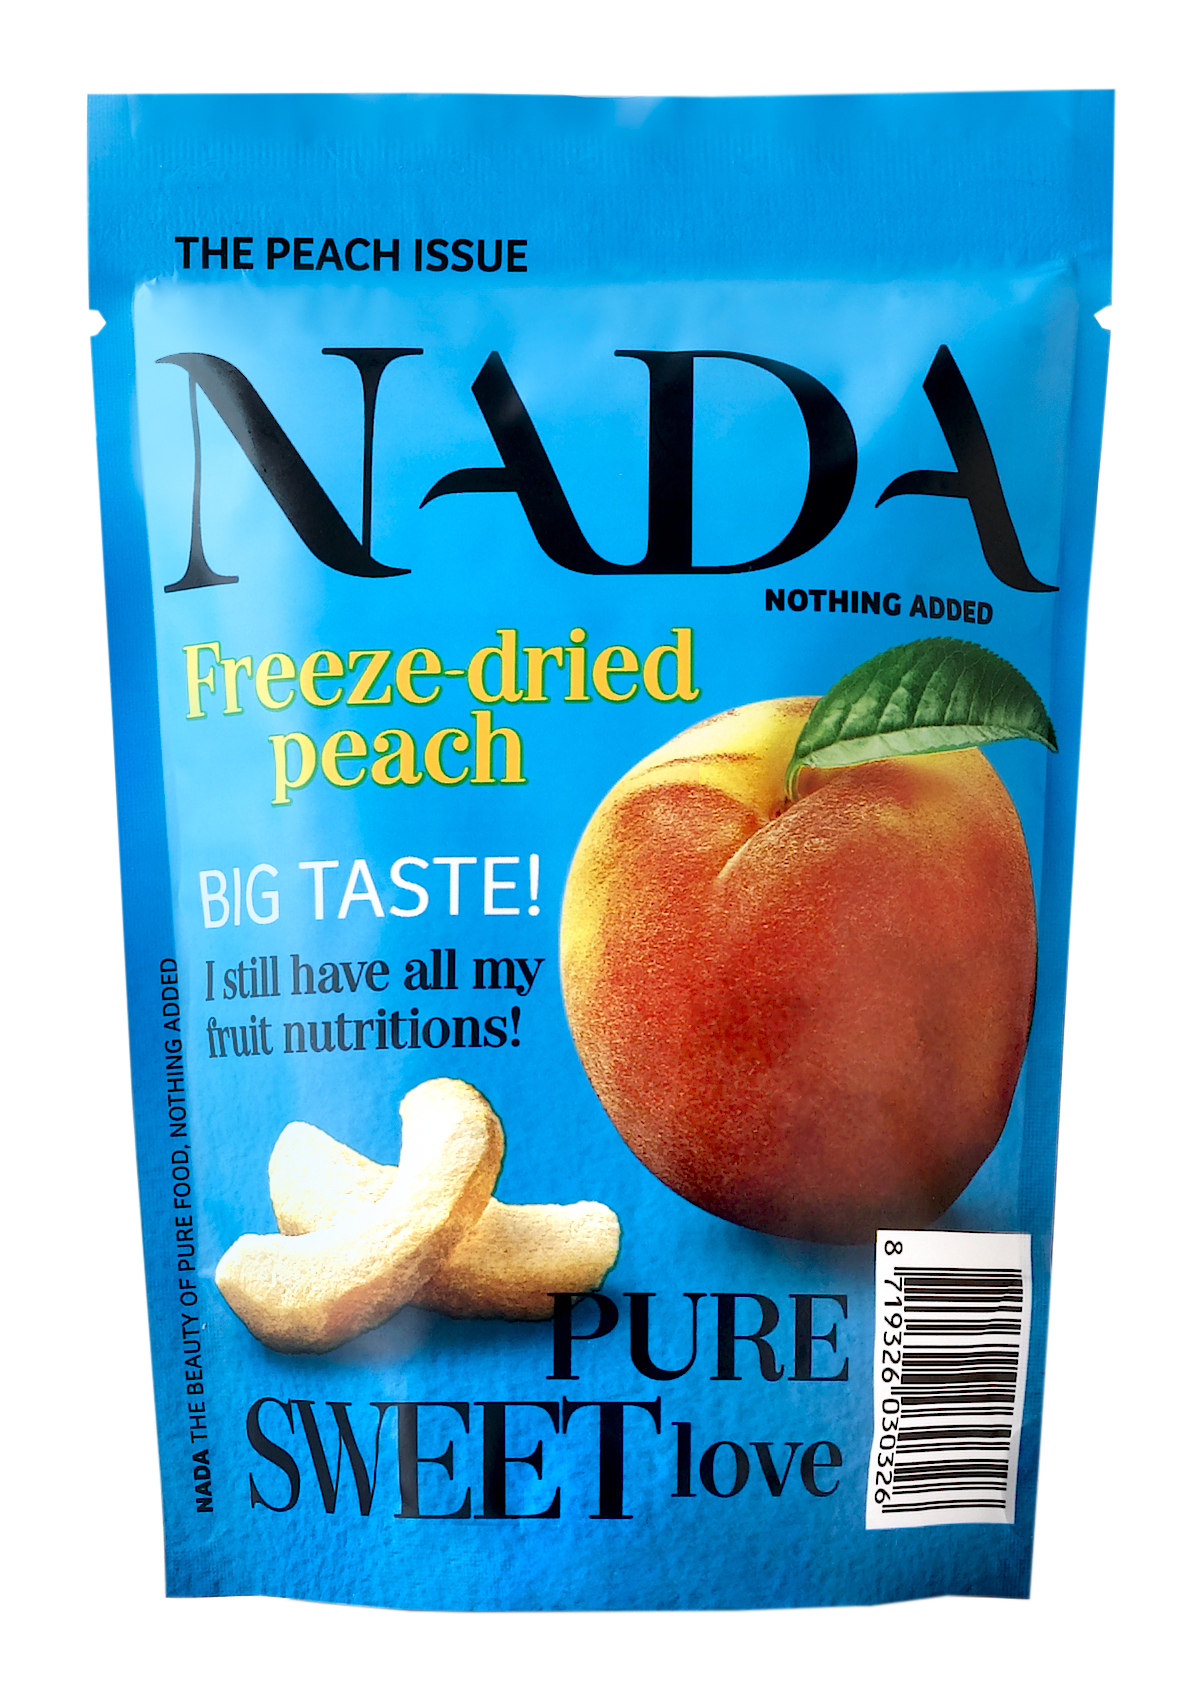 NADA freeze-dried peach